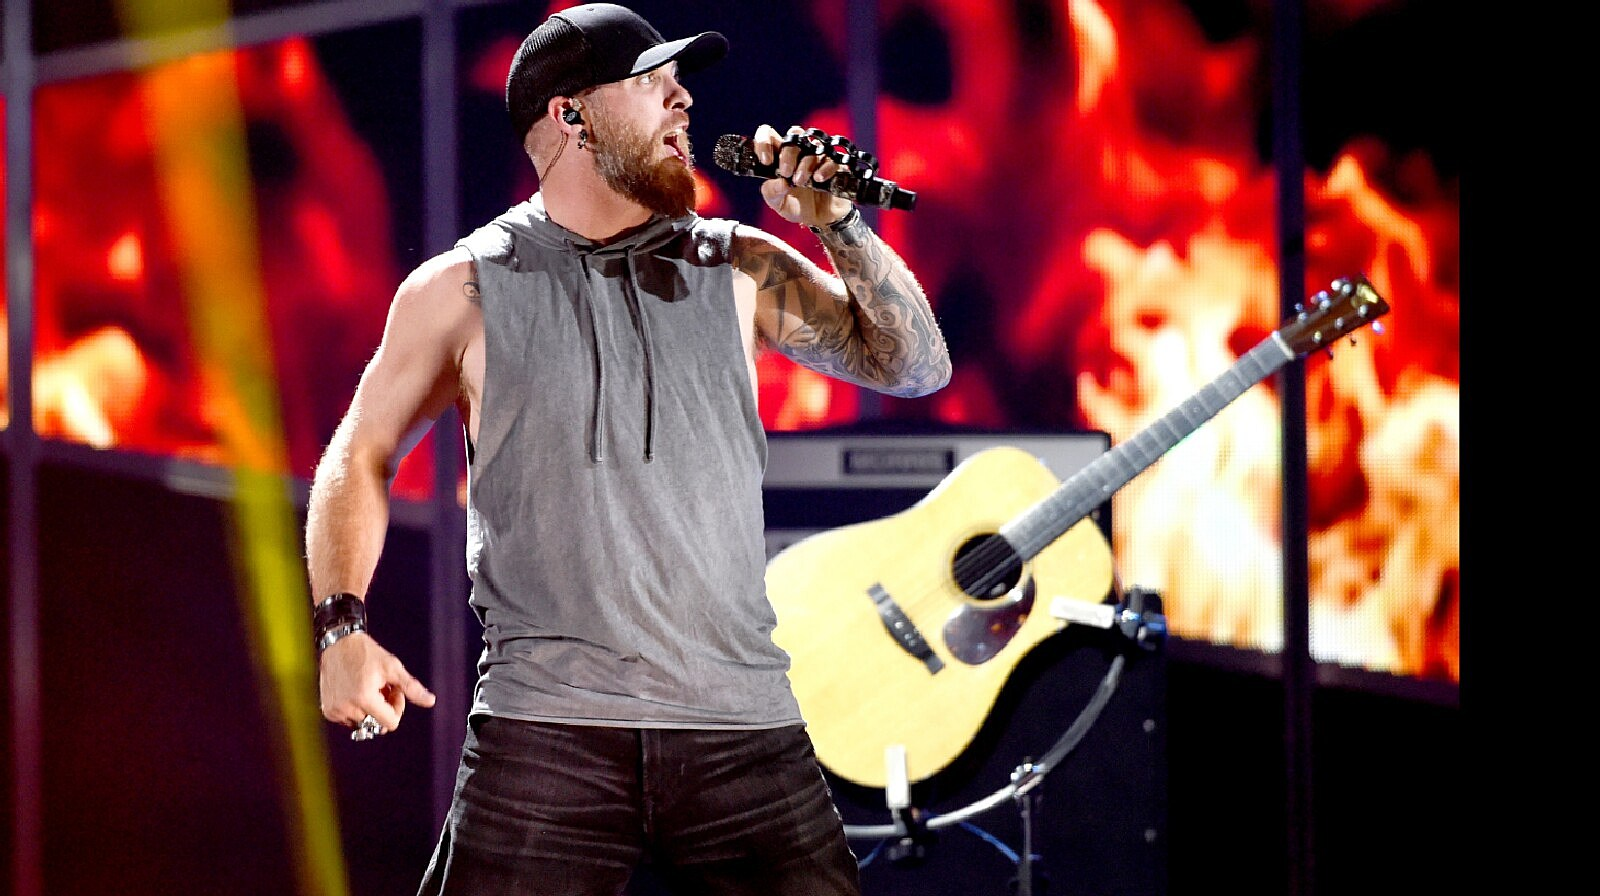 Last Chance To Win Brantley Gilbert Tickets And Meet And Greet Passes